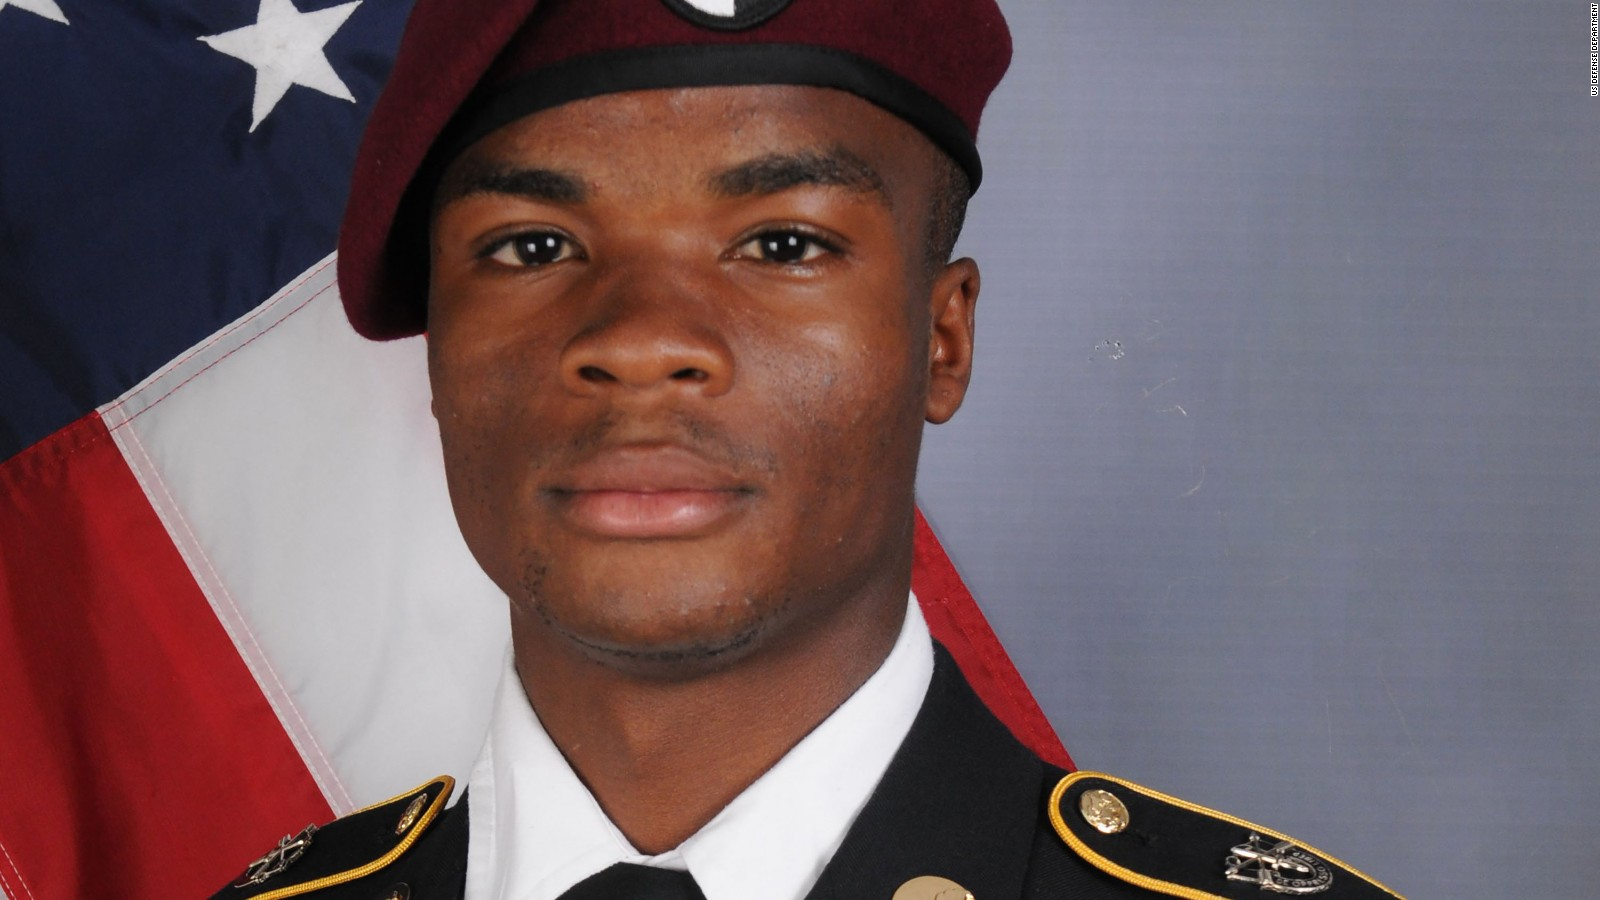 Niger ambush: Timeline of attack that killed 4 US soldiers